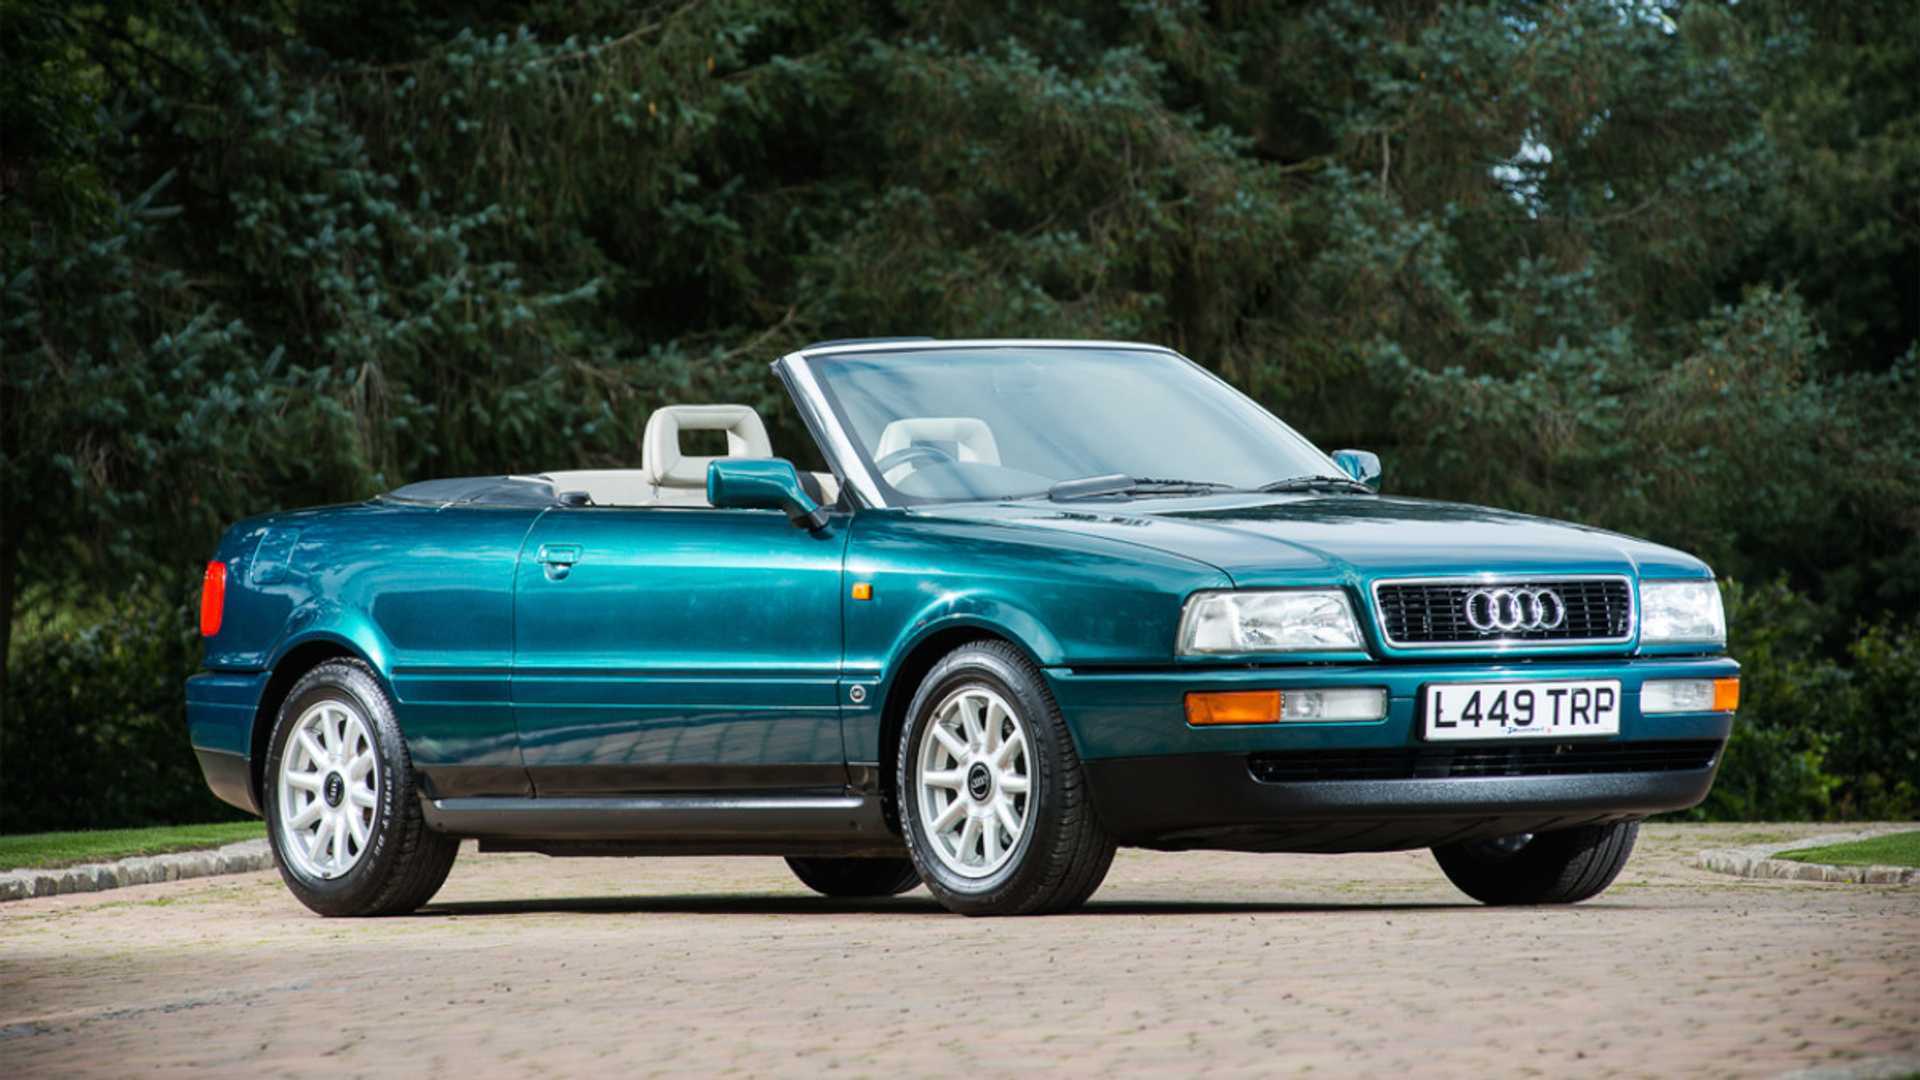 Princess Diana's 1994 Audi A4 Cabriolet up for grabs, again